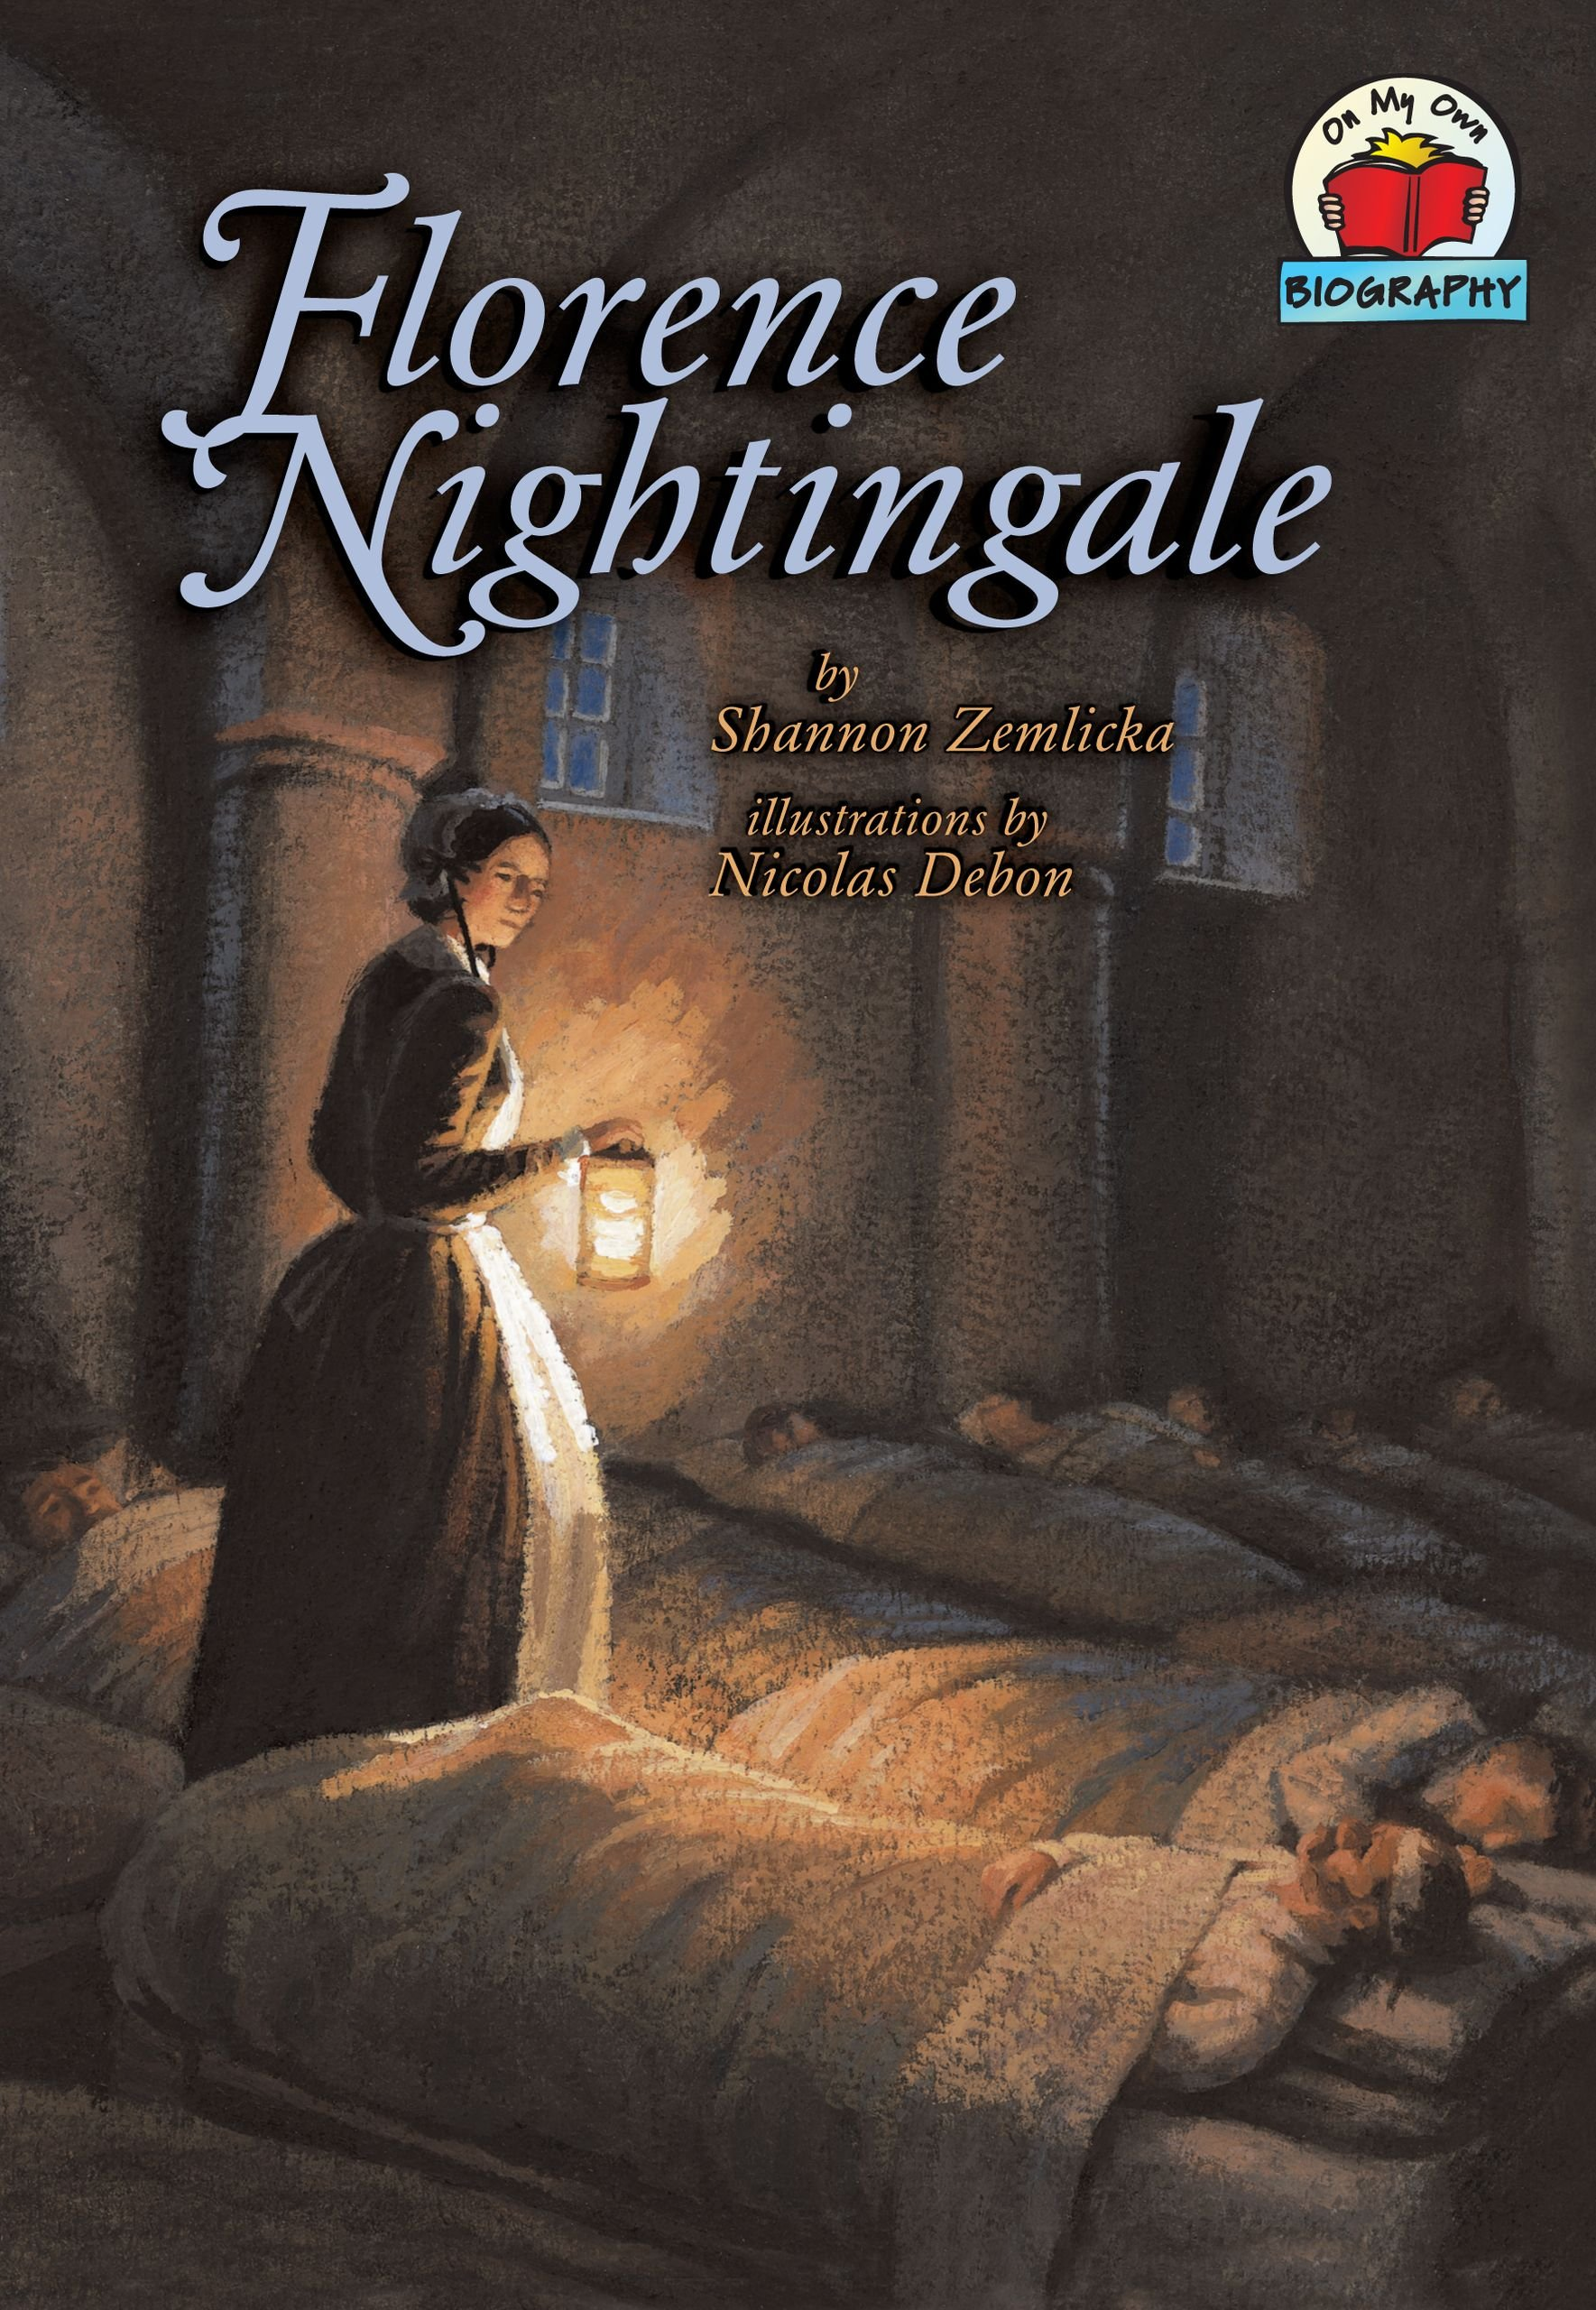 Read Online Florence Nightingale (On My Own Biography) pdf epub